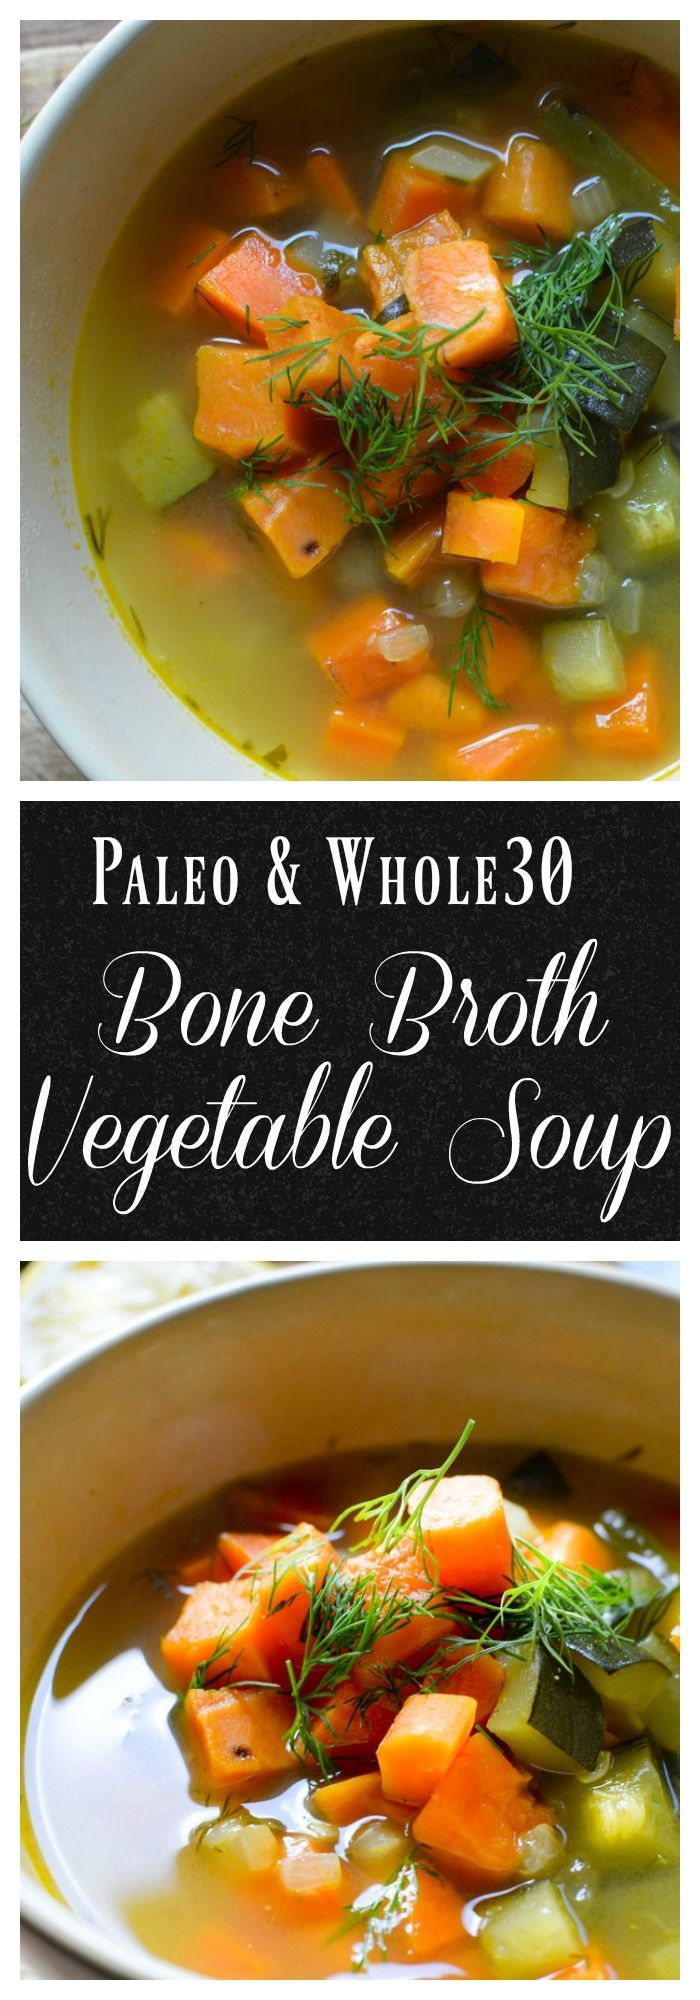 This gut healthy bone broth vegetable soup is perfect for a cold winter day or any time of the year. #soup, #bonebroth, #traditionalfood, #paleo, #whole30, #glutenfree, #dairyfree, #lunch